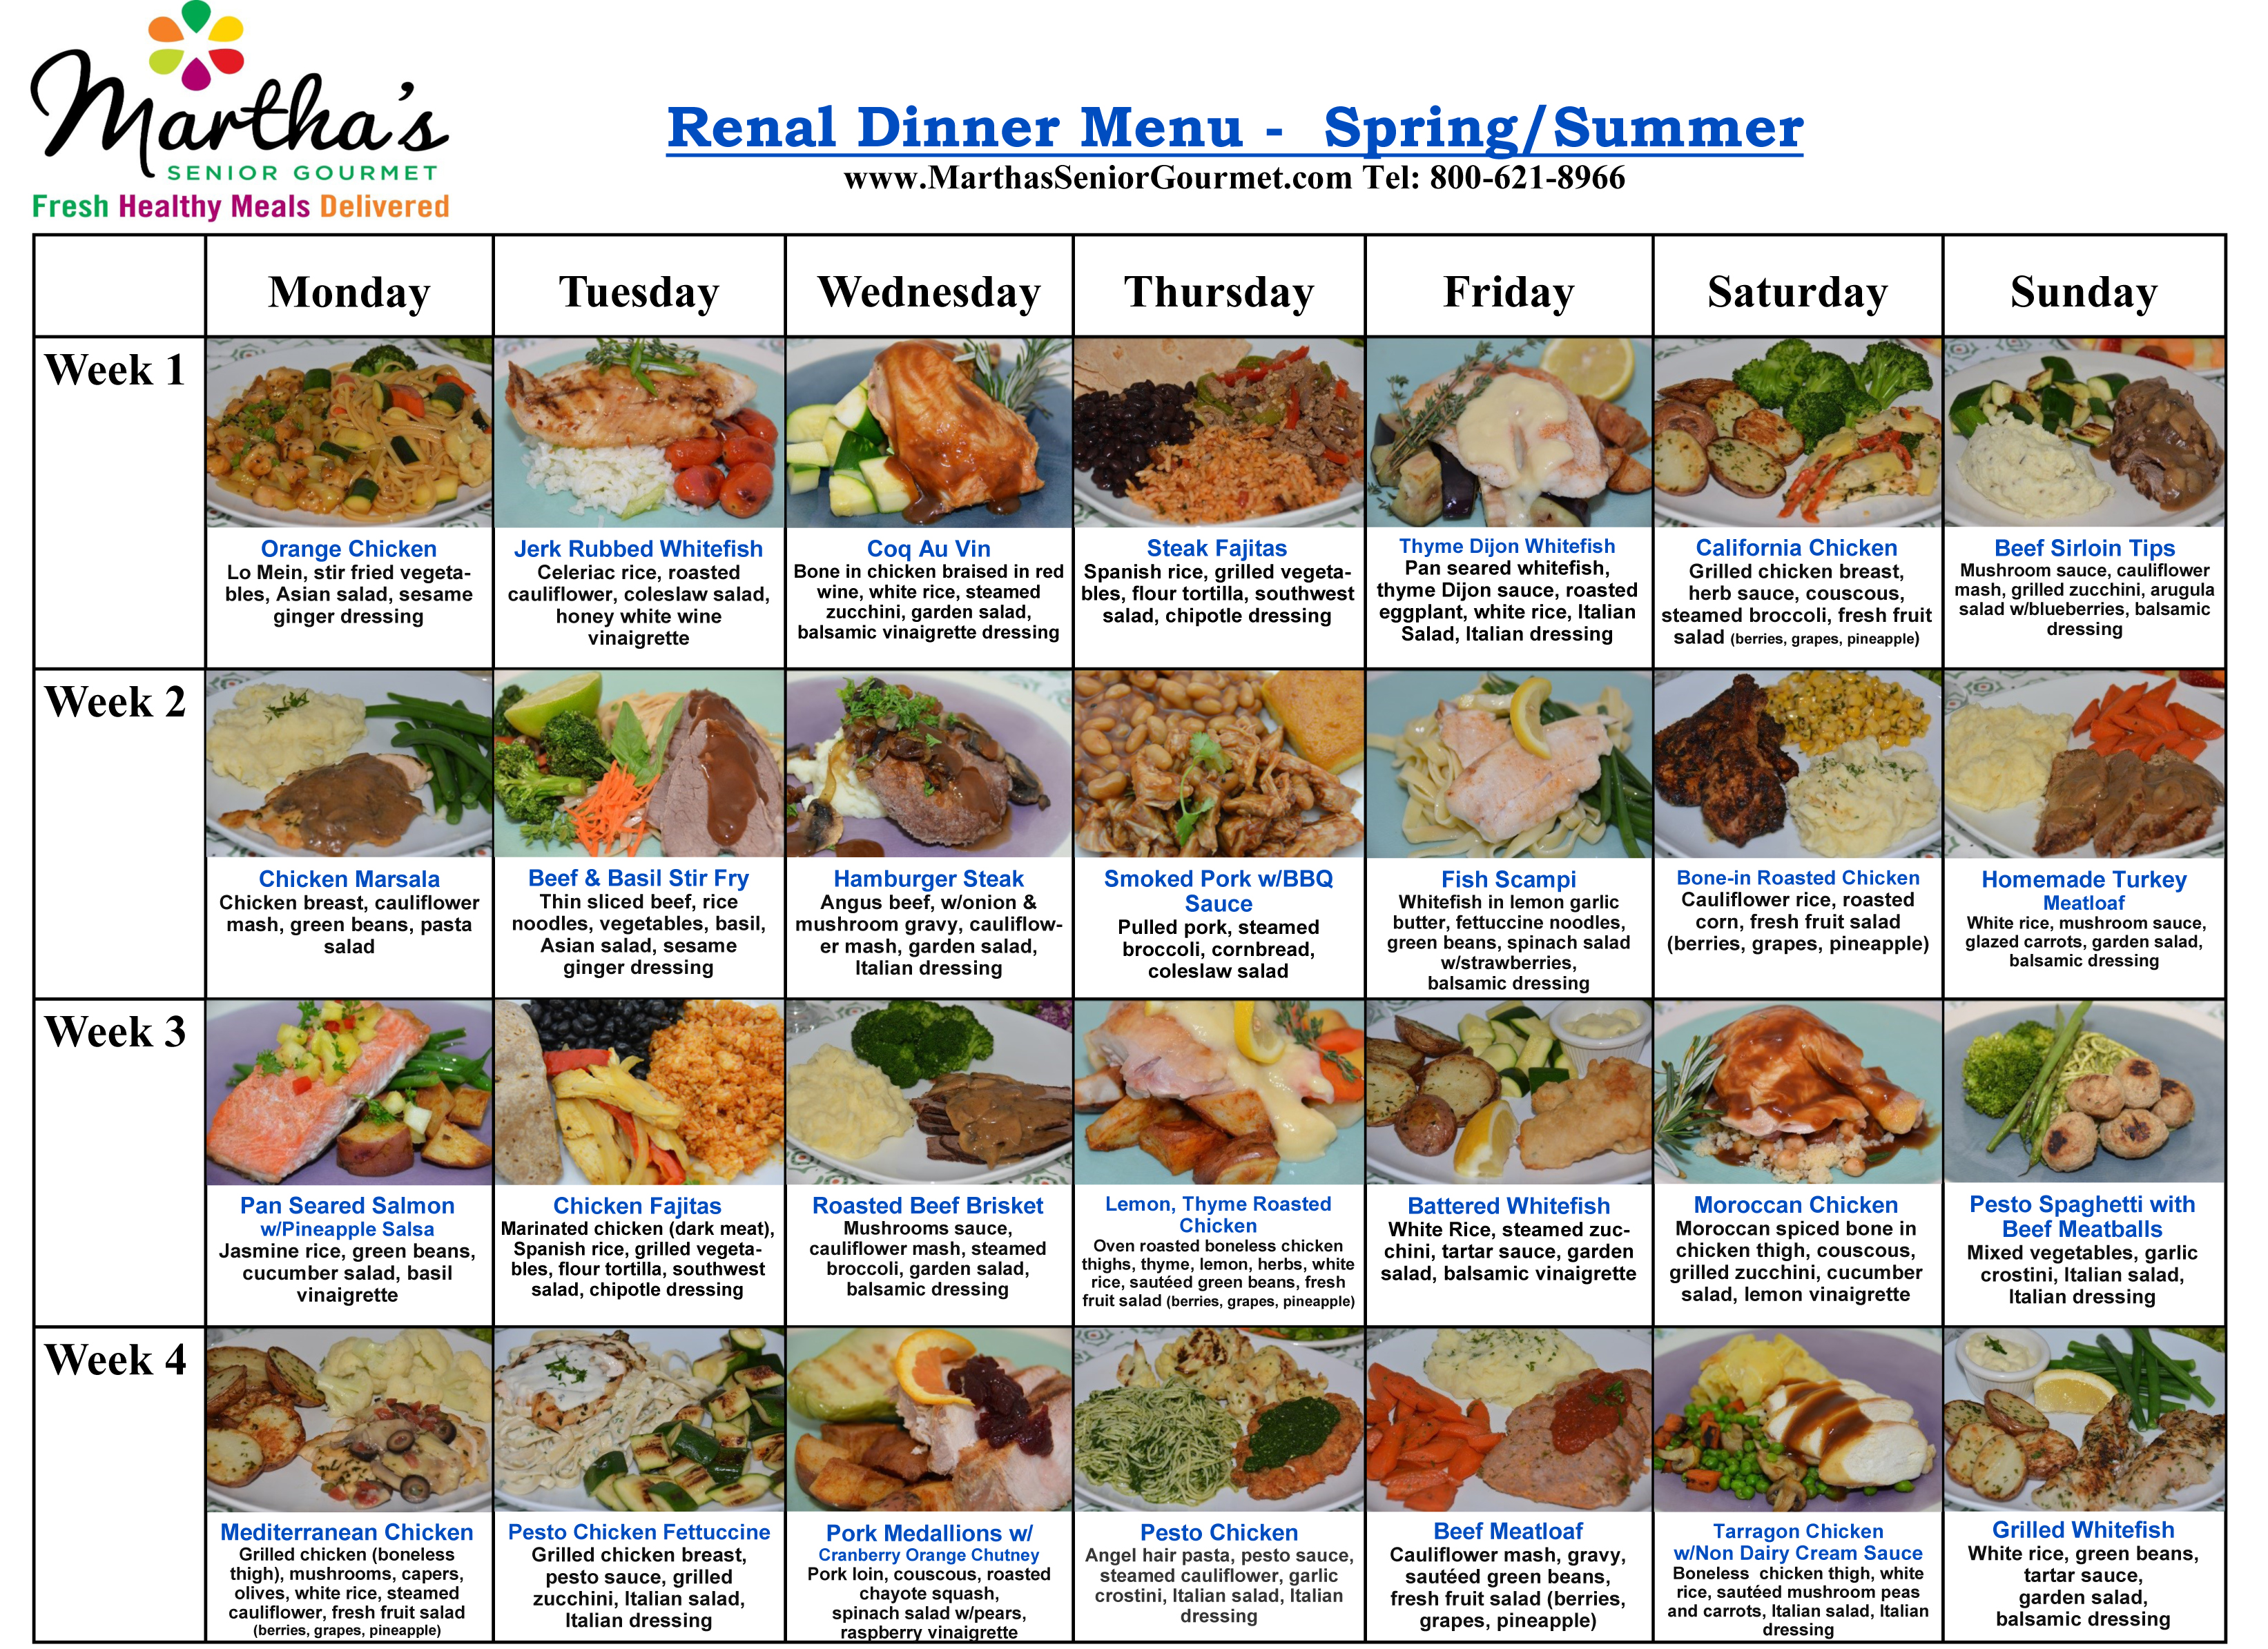 Martha's Renal Dinner Menu - Spring and Summer